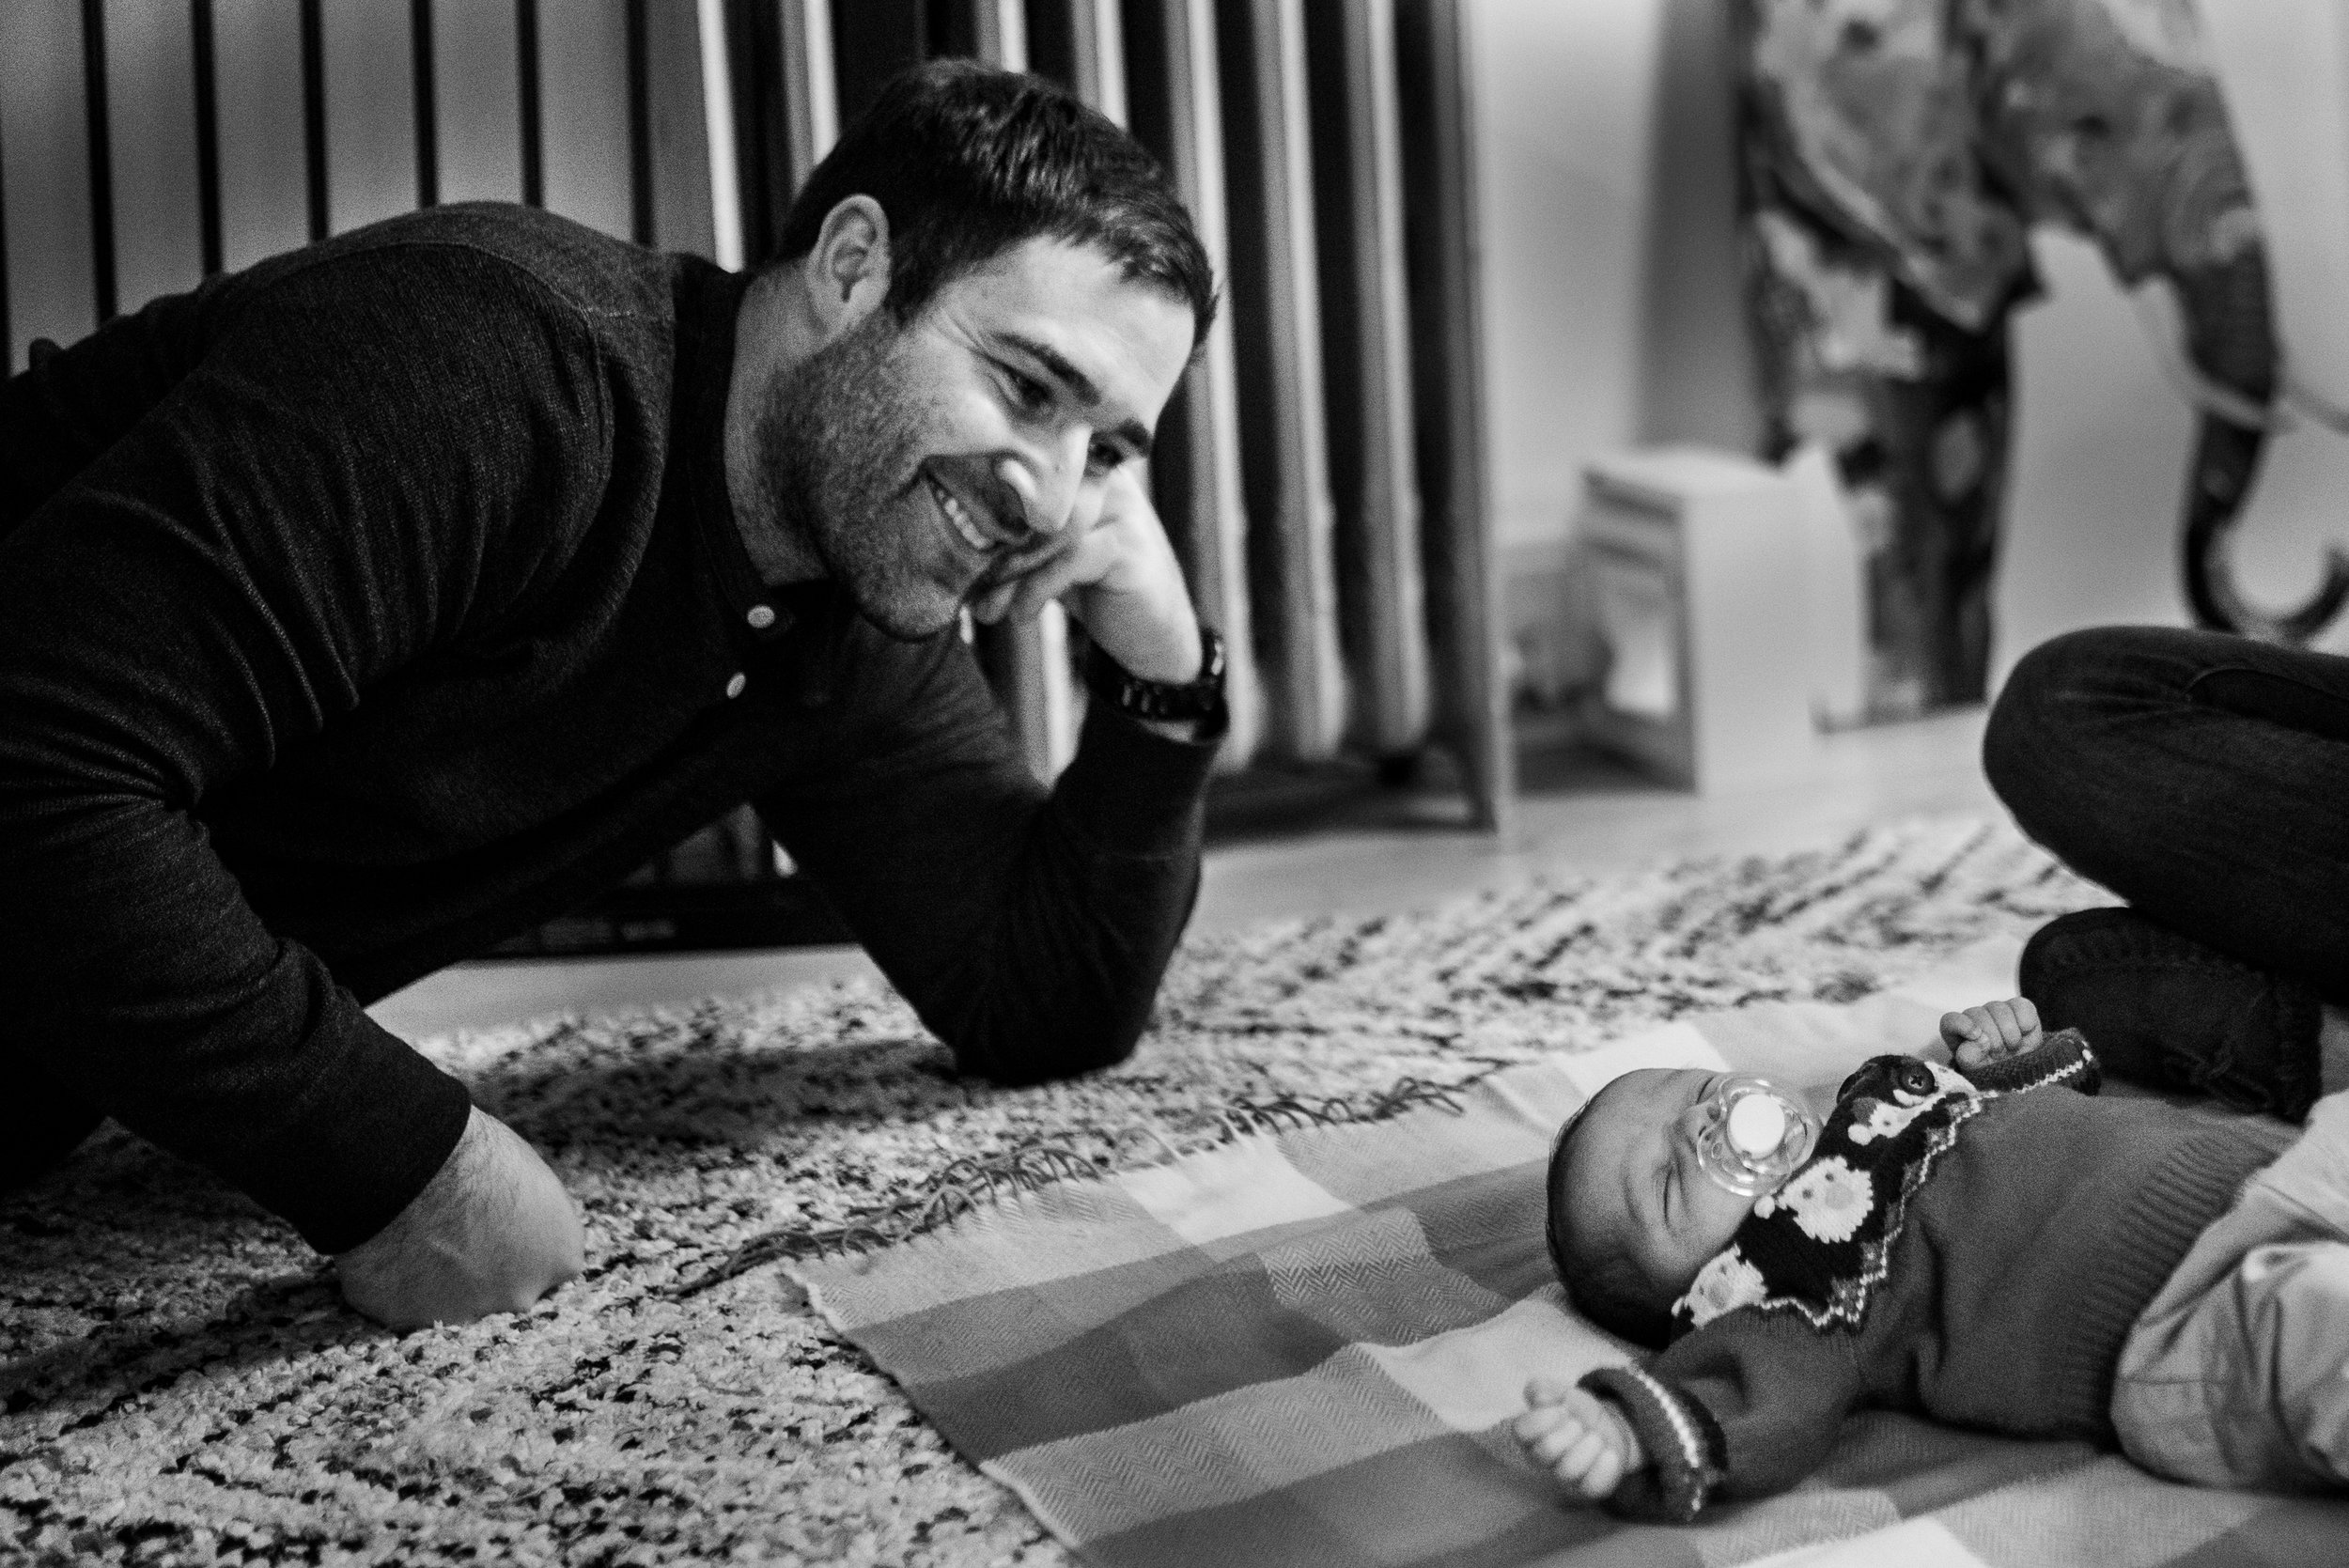 Newborn baby sleeping on the floor with pacifier in his mouth, dad looking down and proudly smiling at baby